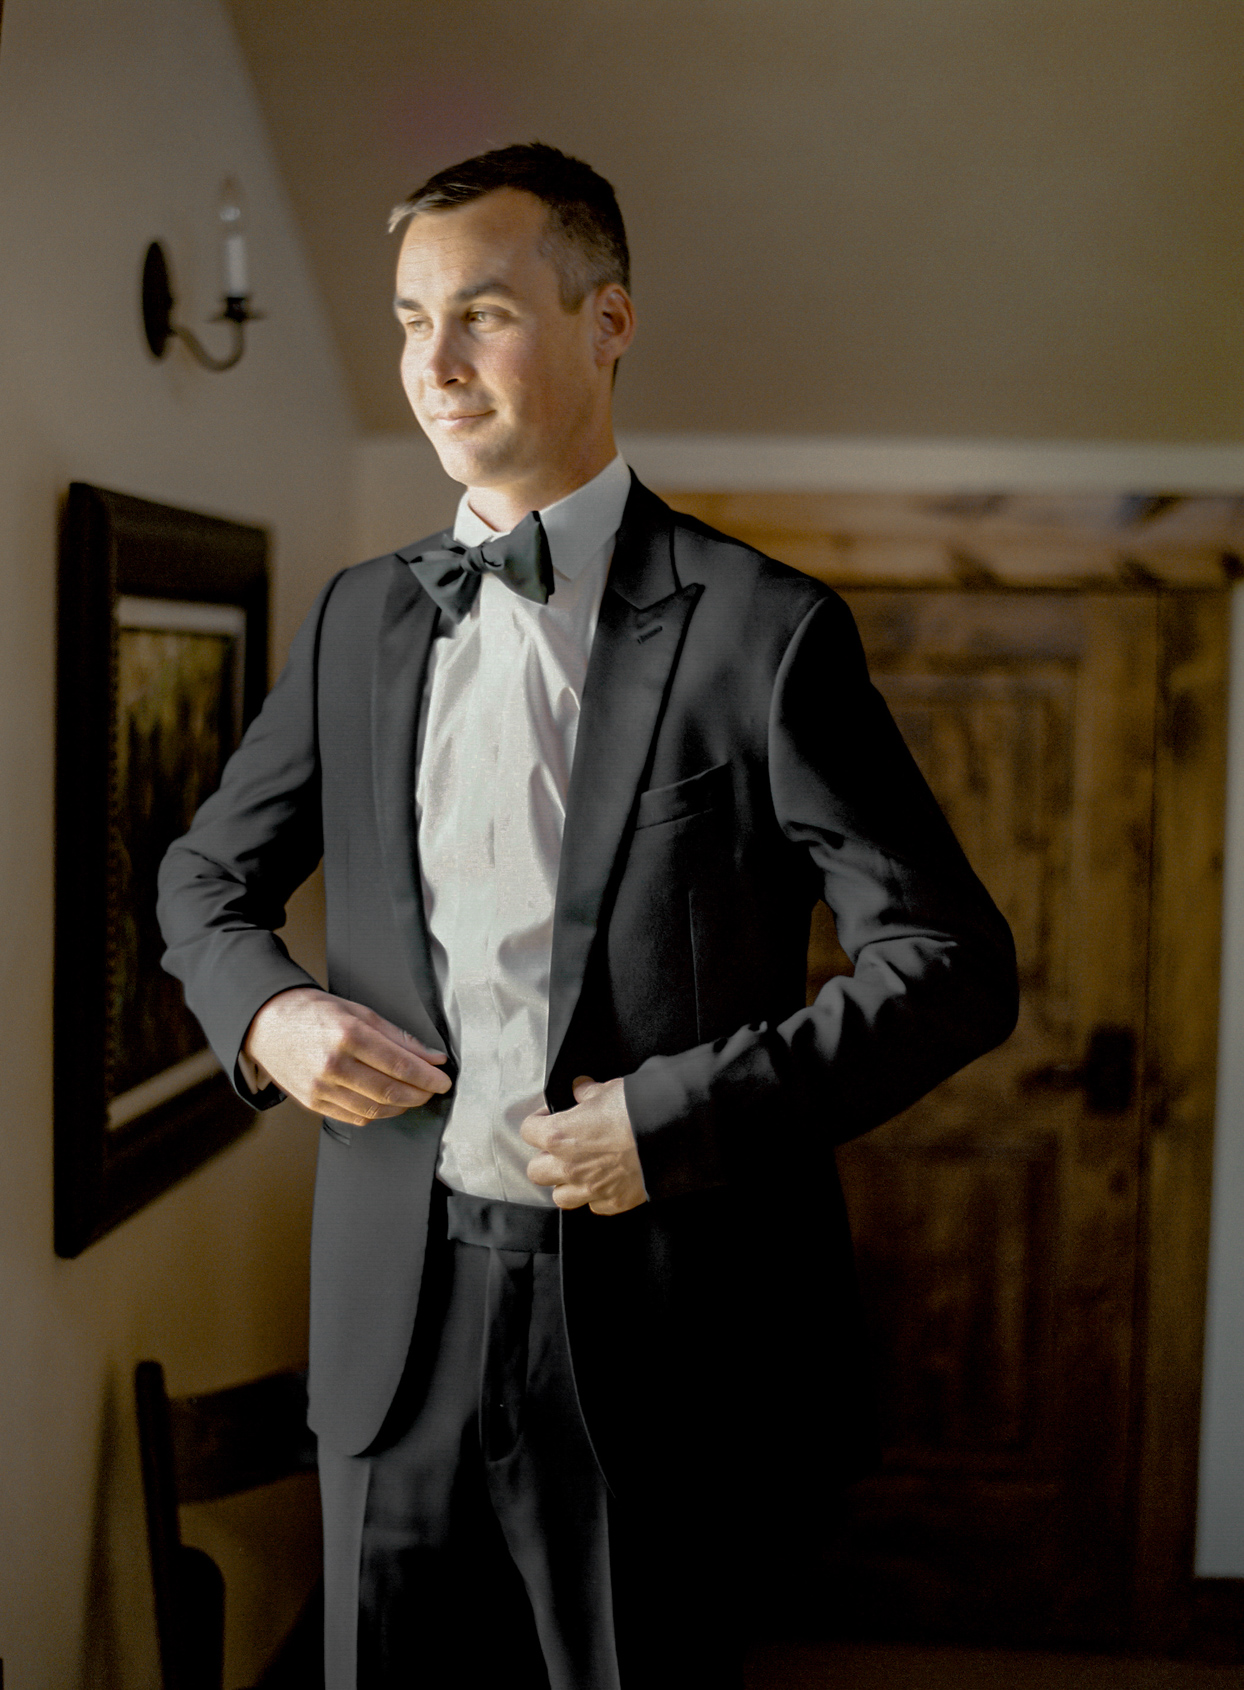 groom putting on black suit jacket with bowtie